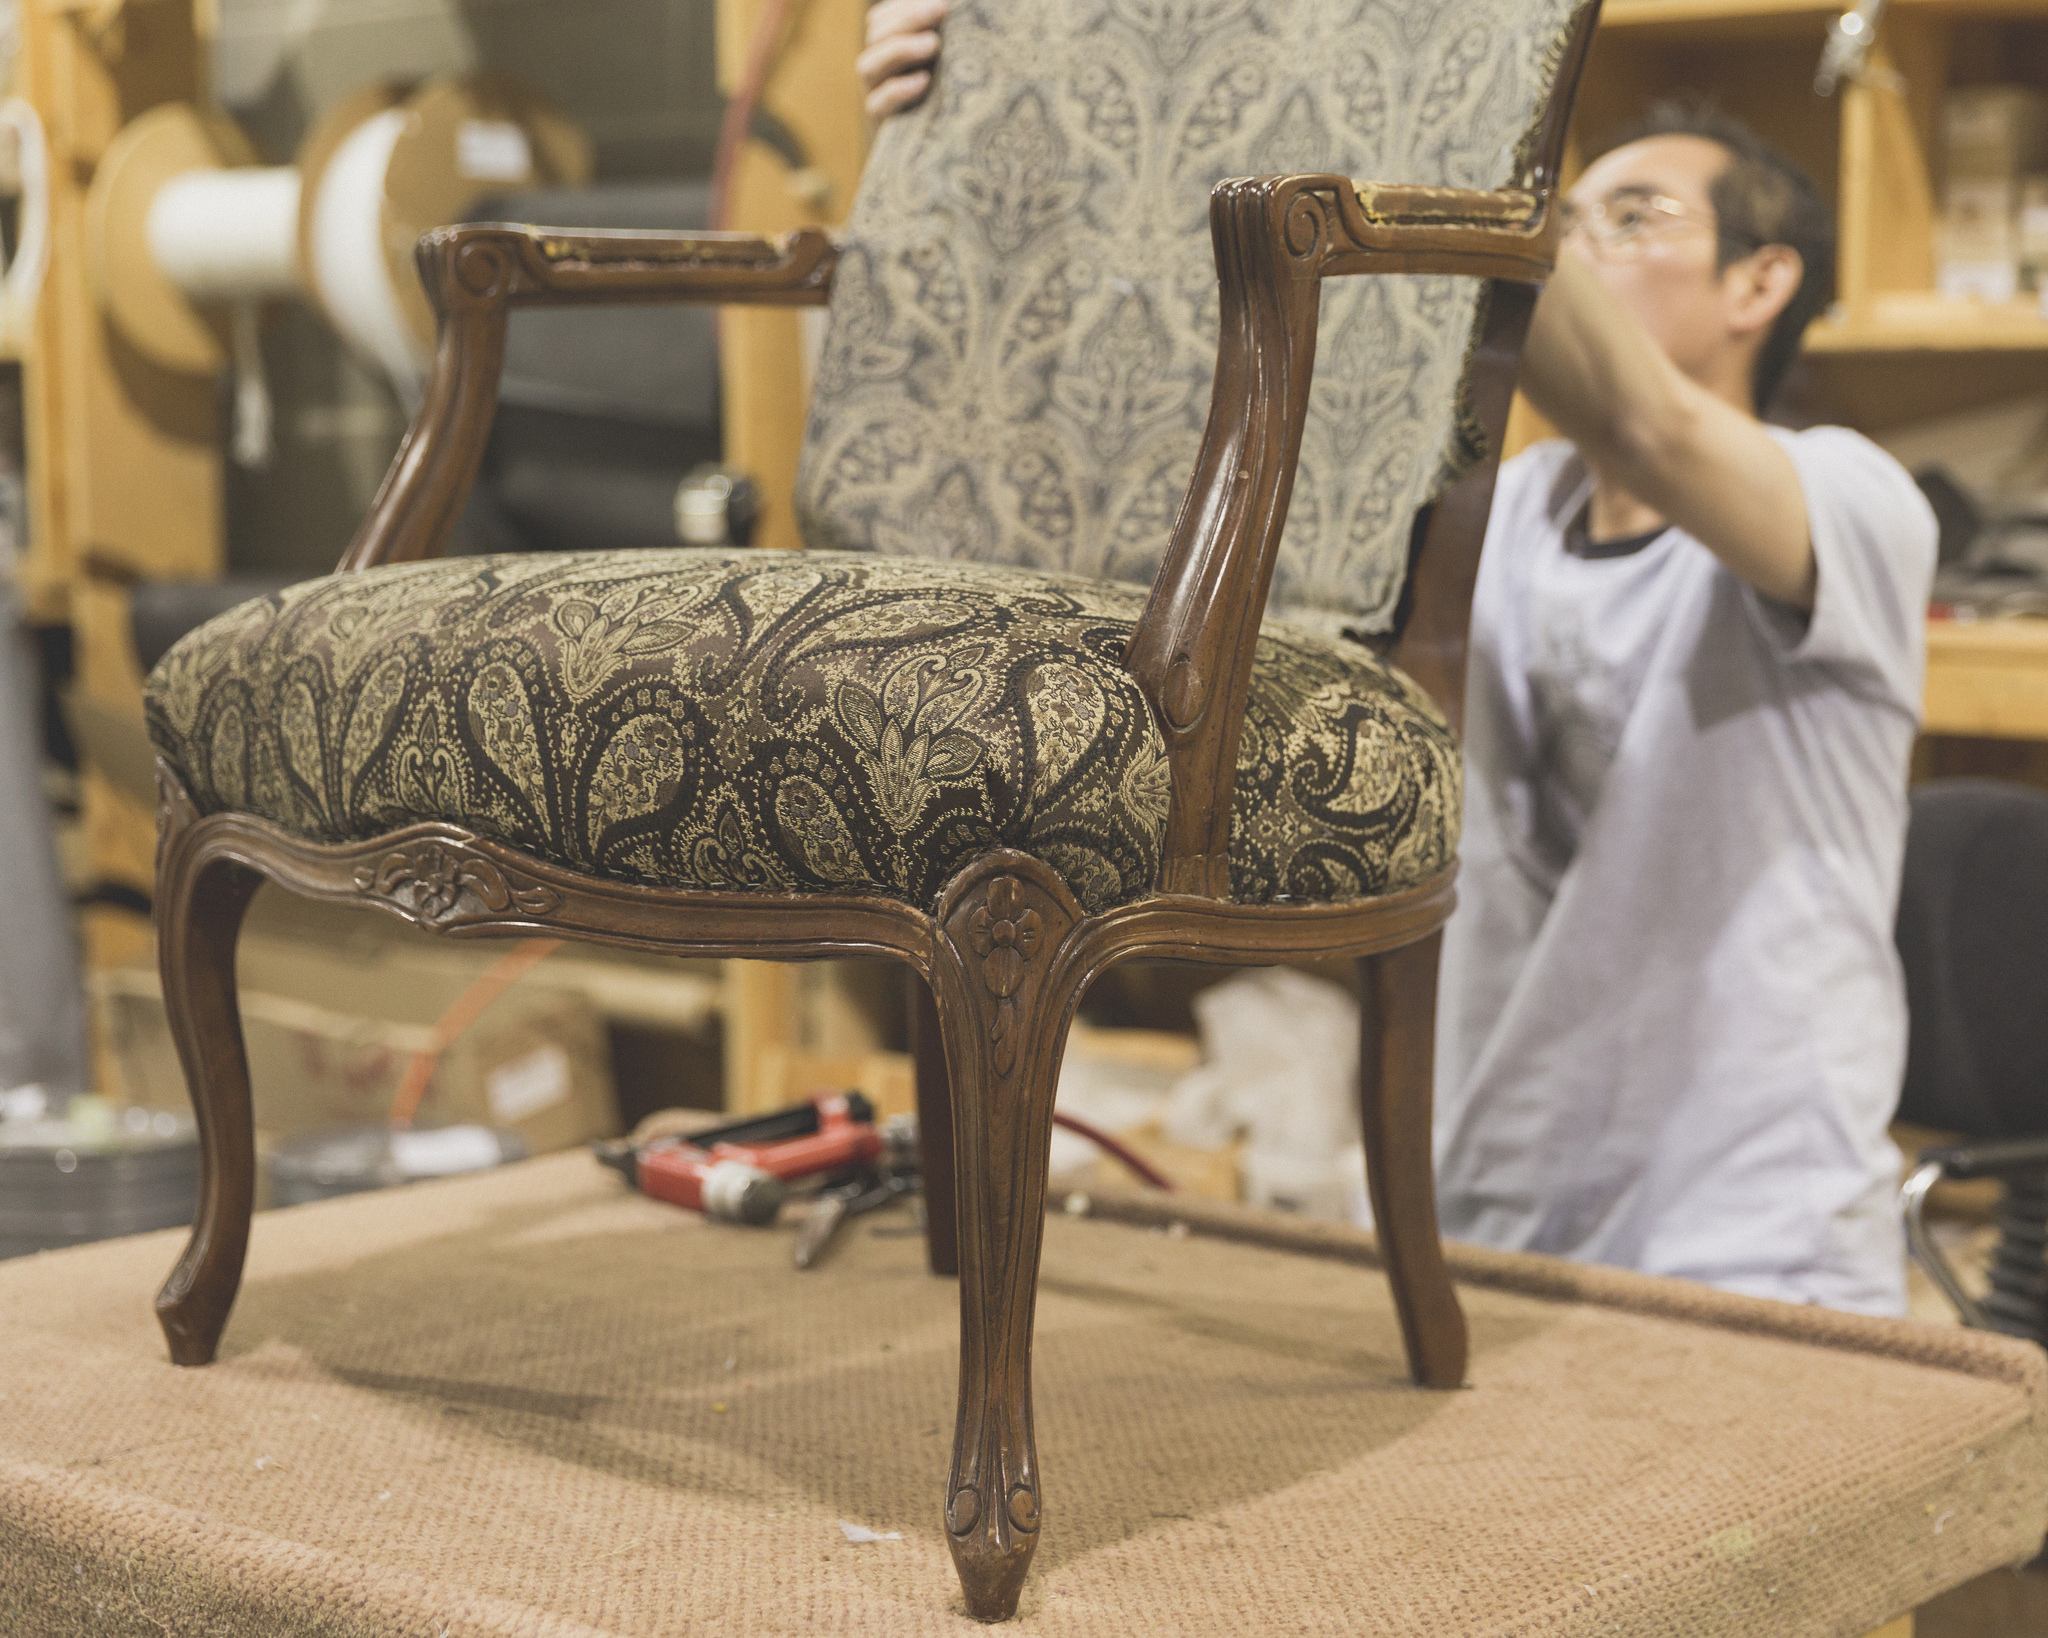 Man works on reupholstering and refinishing vintage arm chair in a designer brocade fabric.